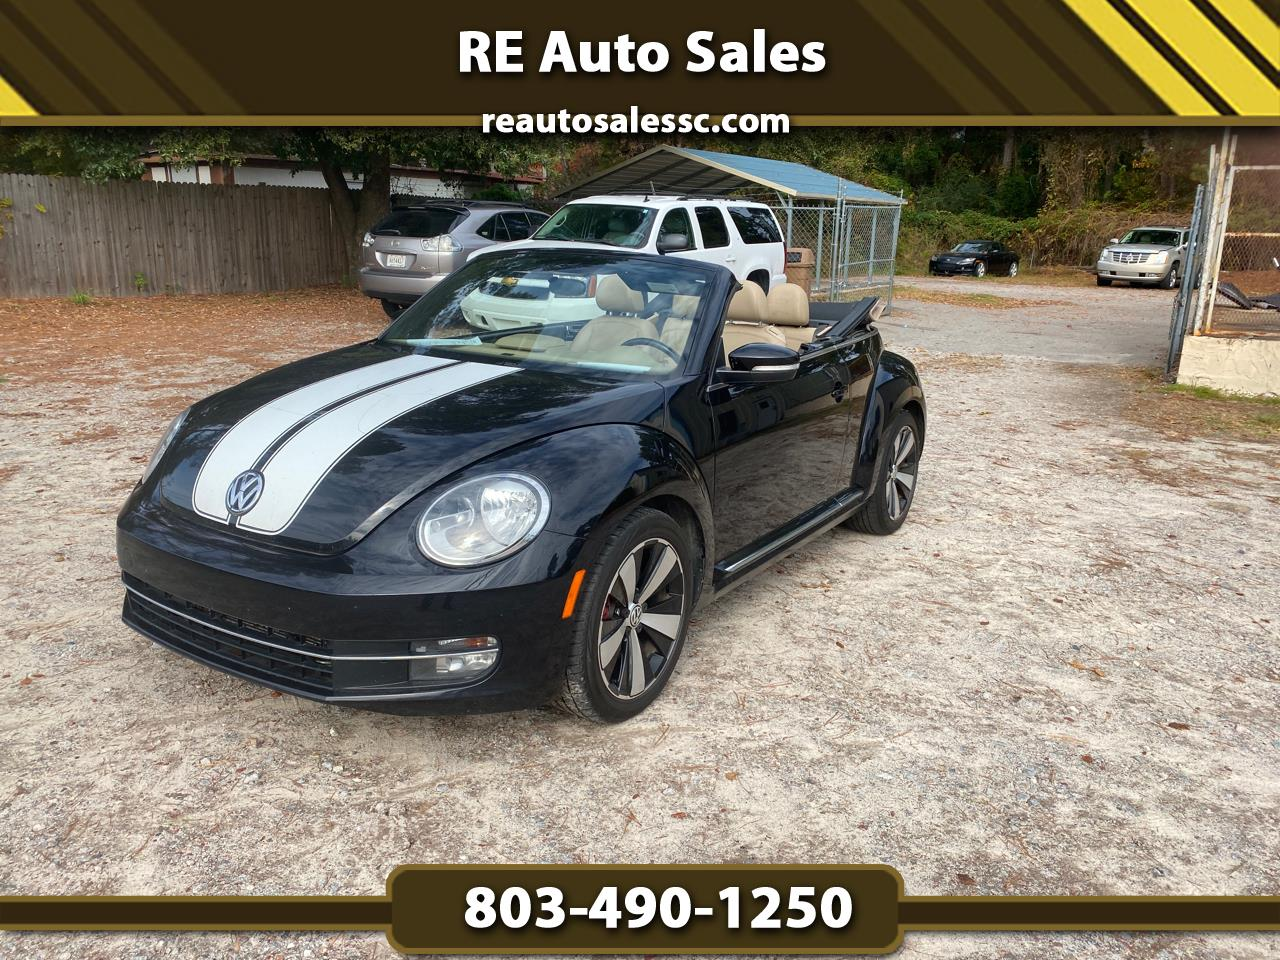 2013 Volkswagen Beetle 2.0T Turbo Convertible Fender Limited Edition